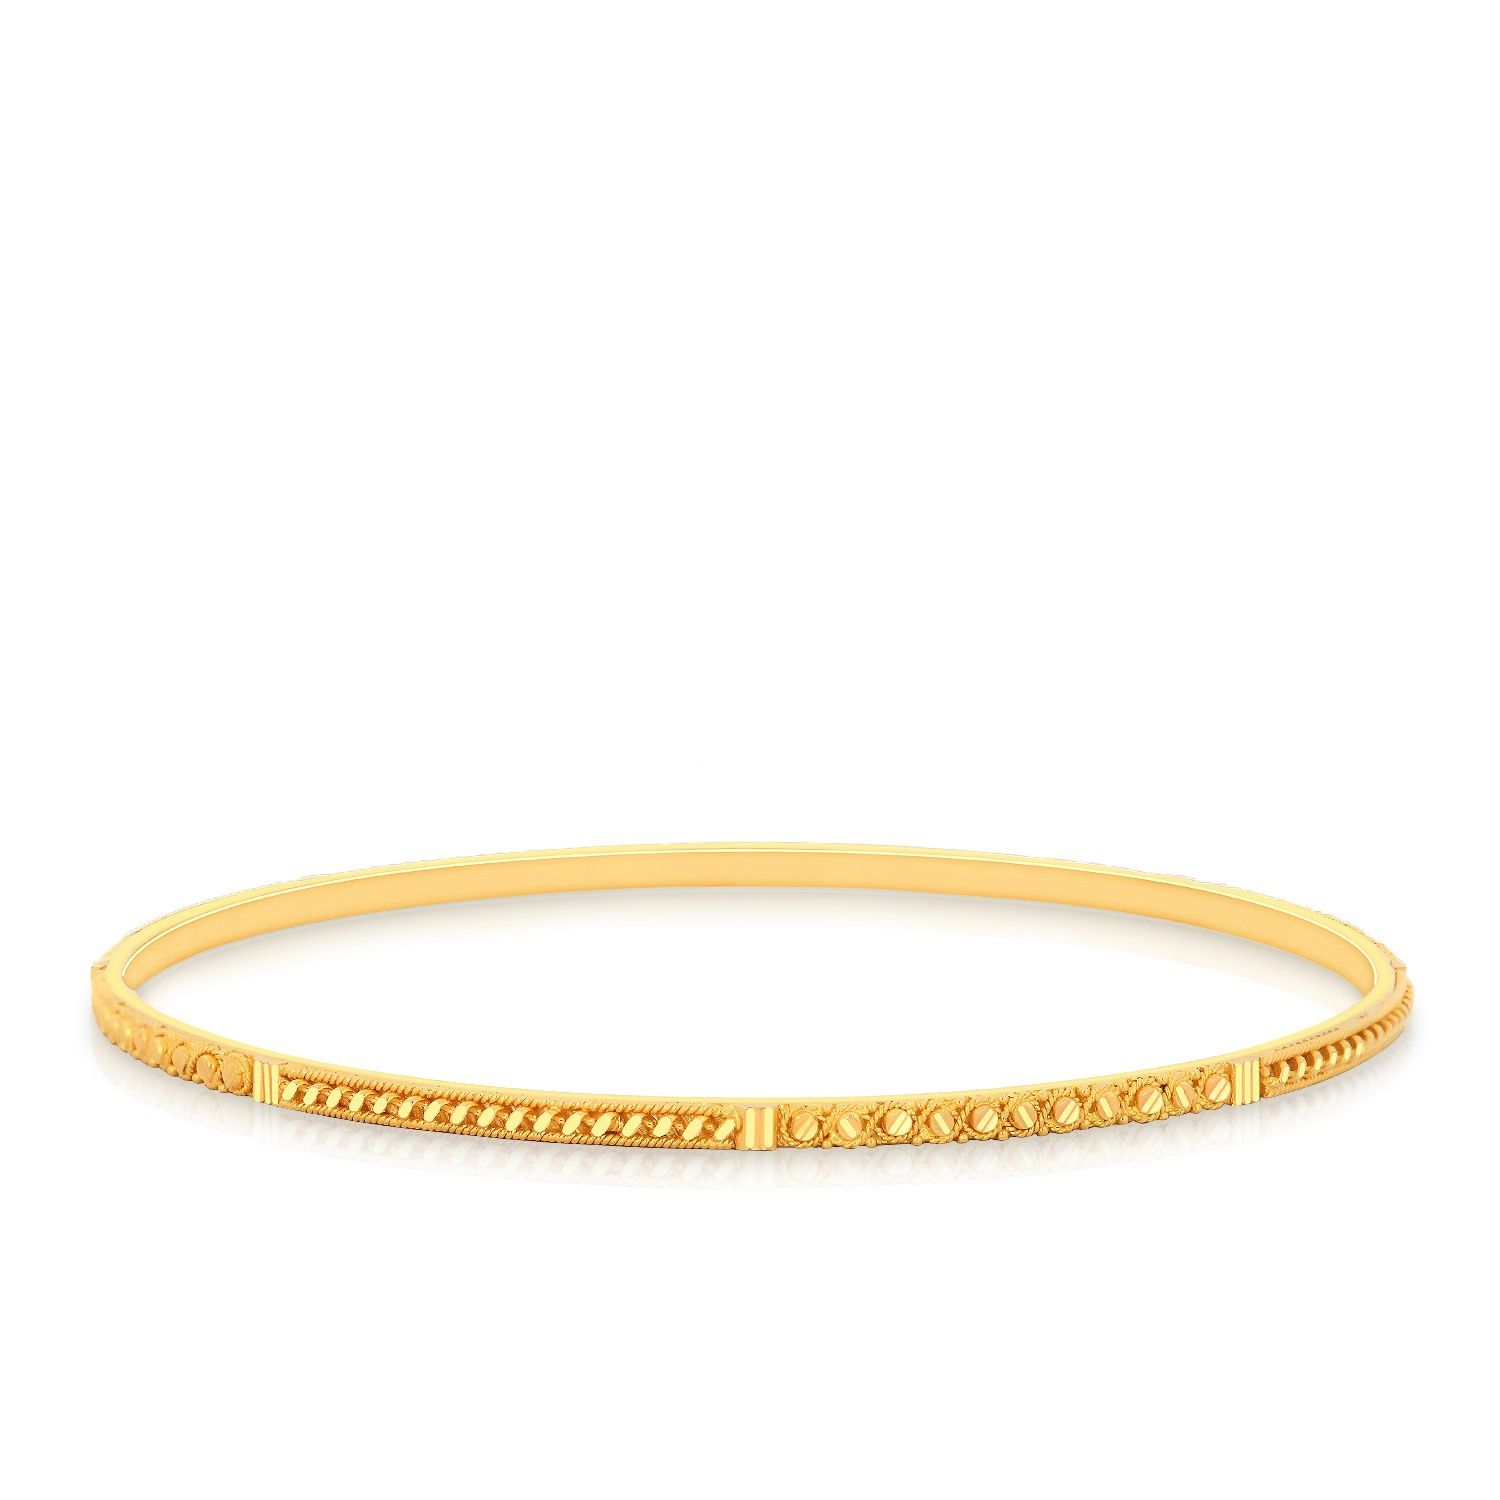 jewelry plating lcl bracelet american gold thin and wearing bangles european free polycyclic product fashion of from liu women combination brass